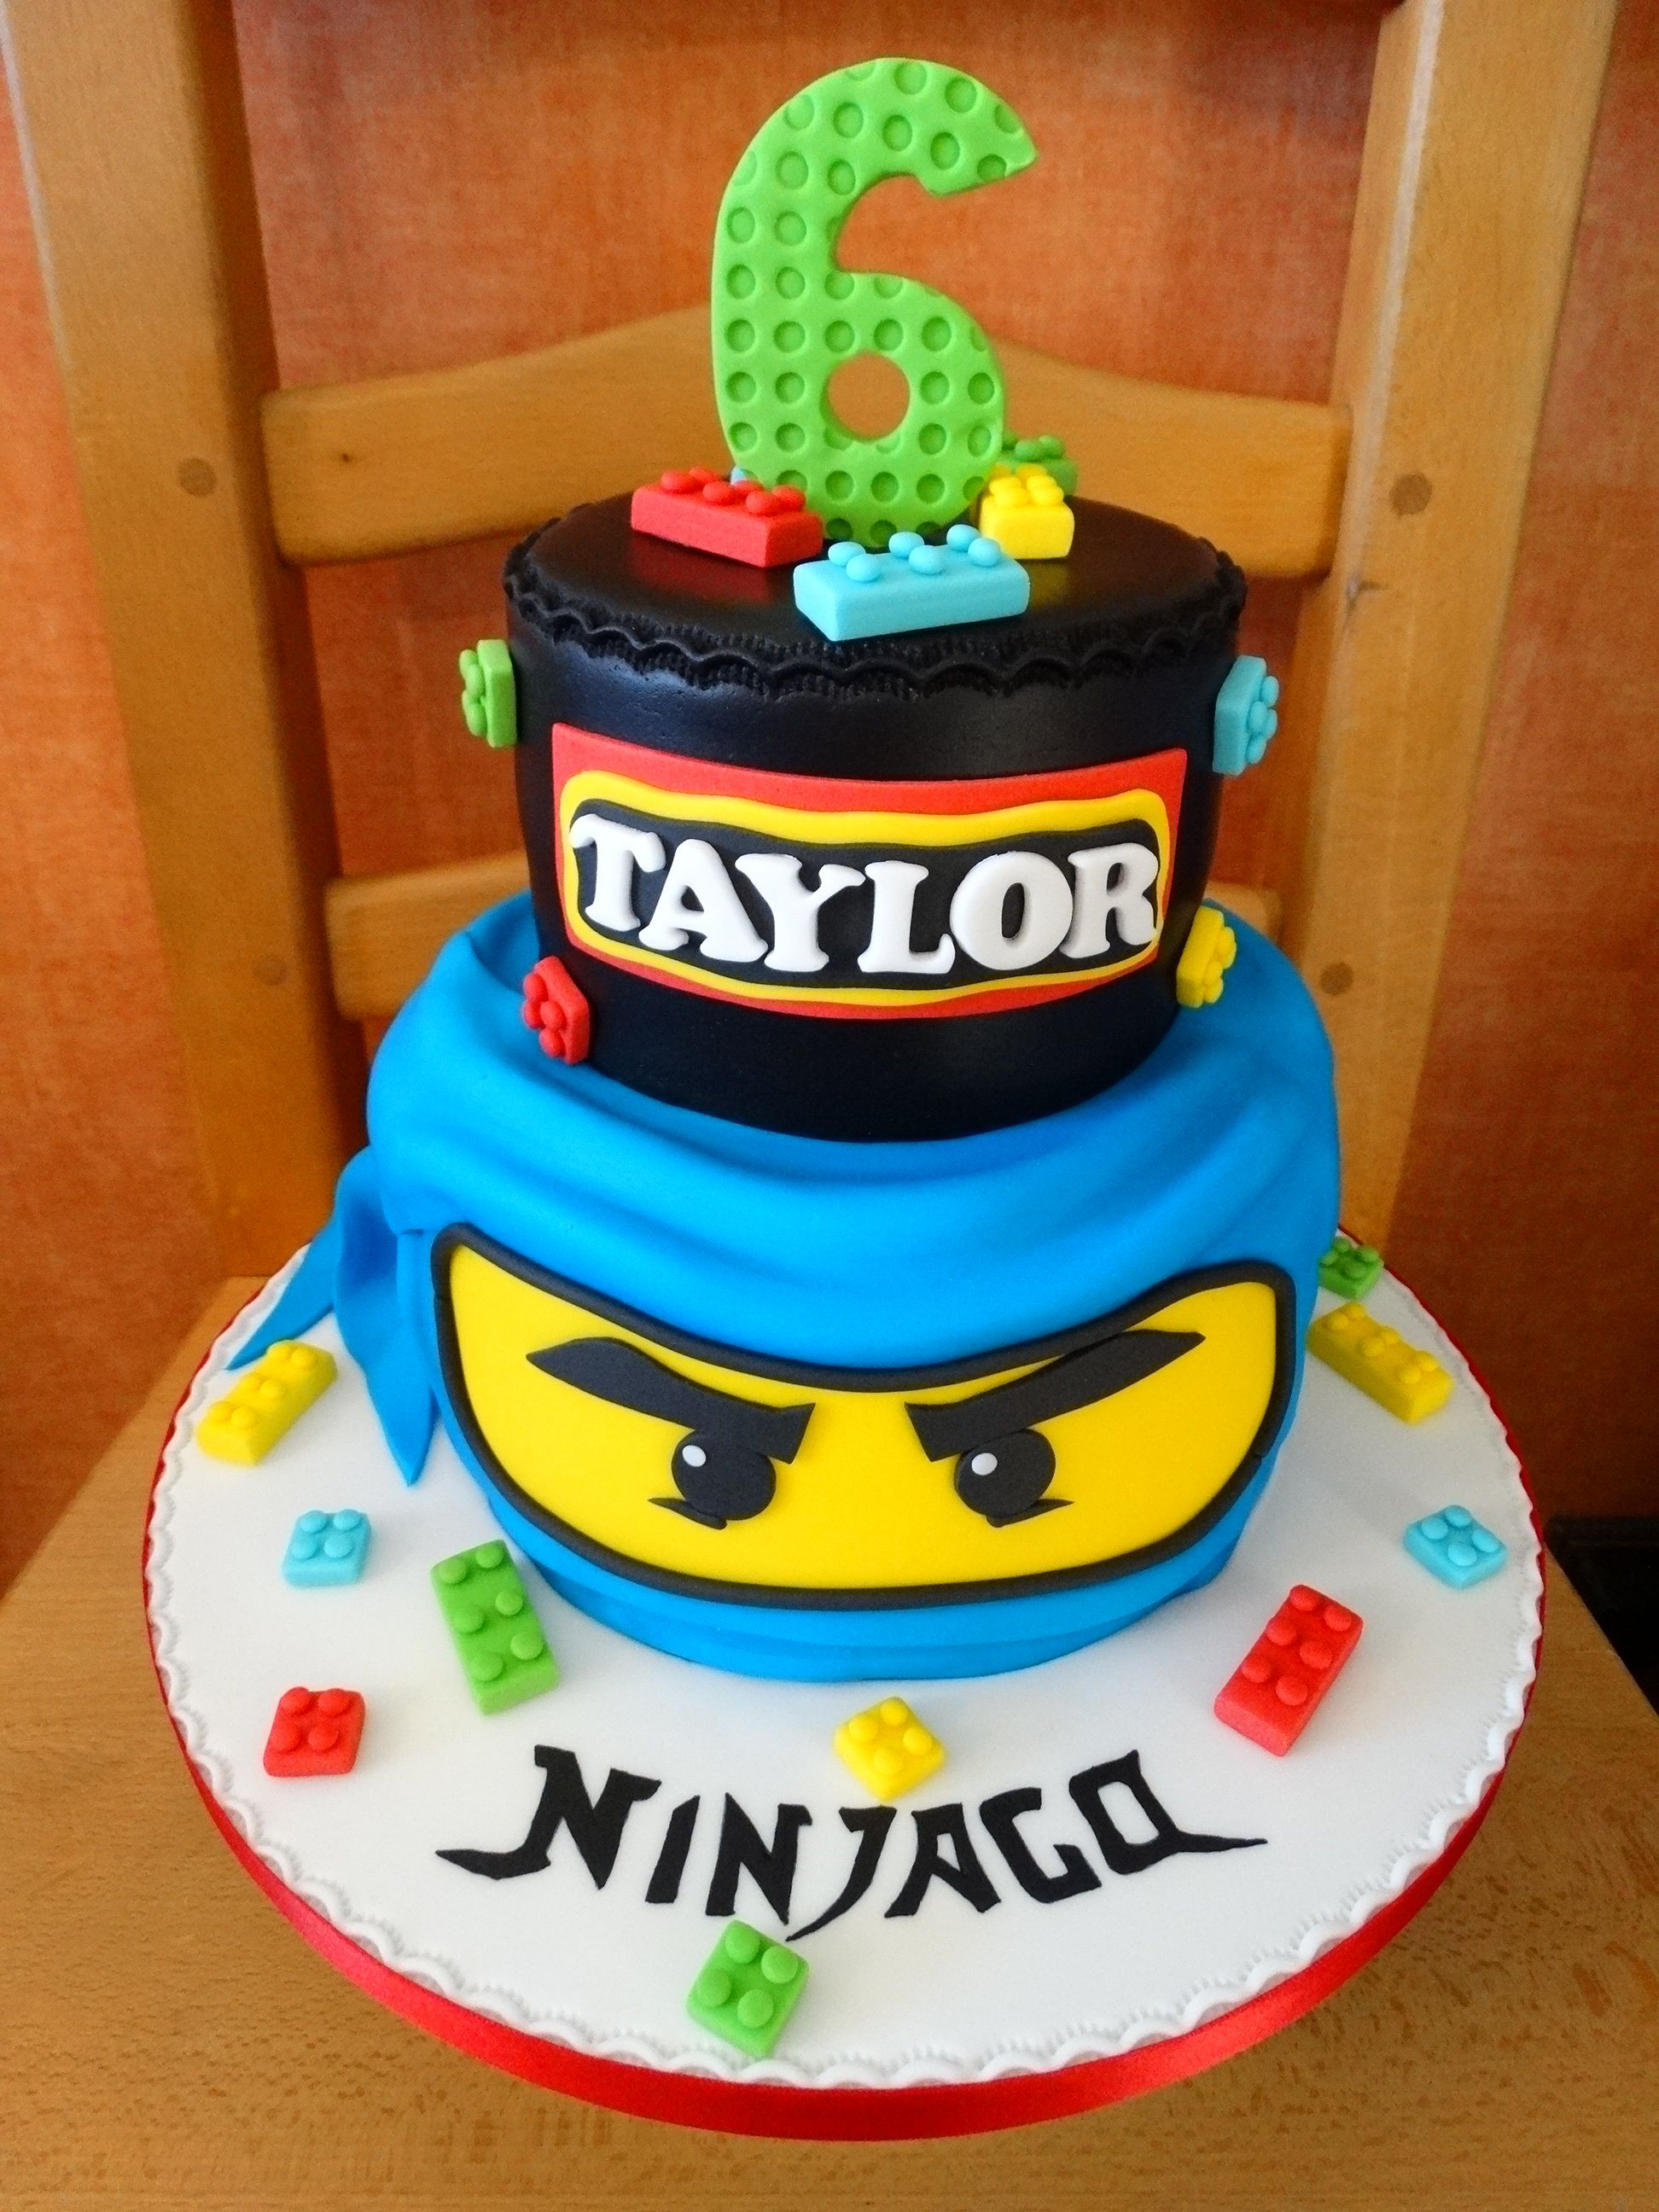 Admirable Blue Ninjago Cake Xmcx With Images Ninjago Cakes Ninjago Funny Birthday Cards Online Inifofree Goldxyz